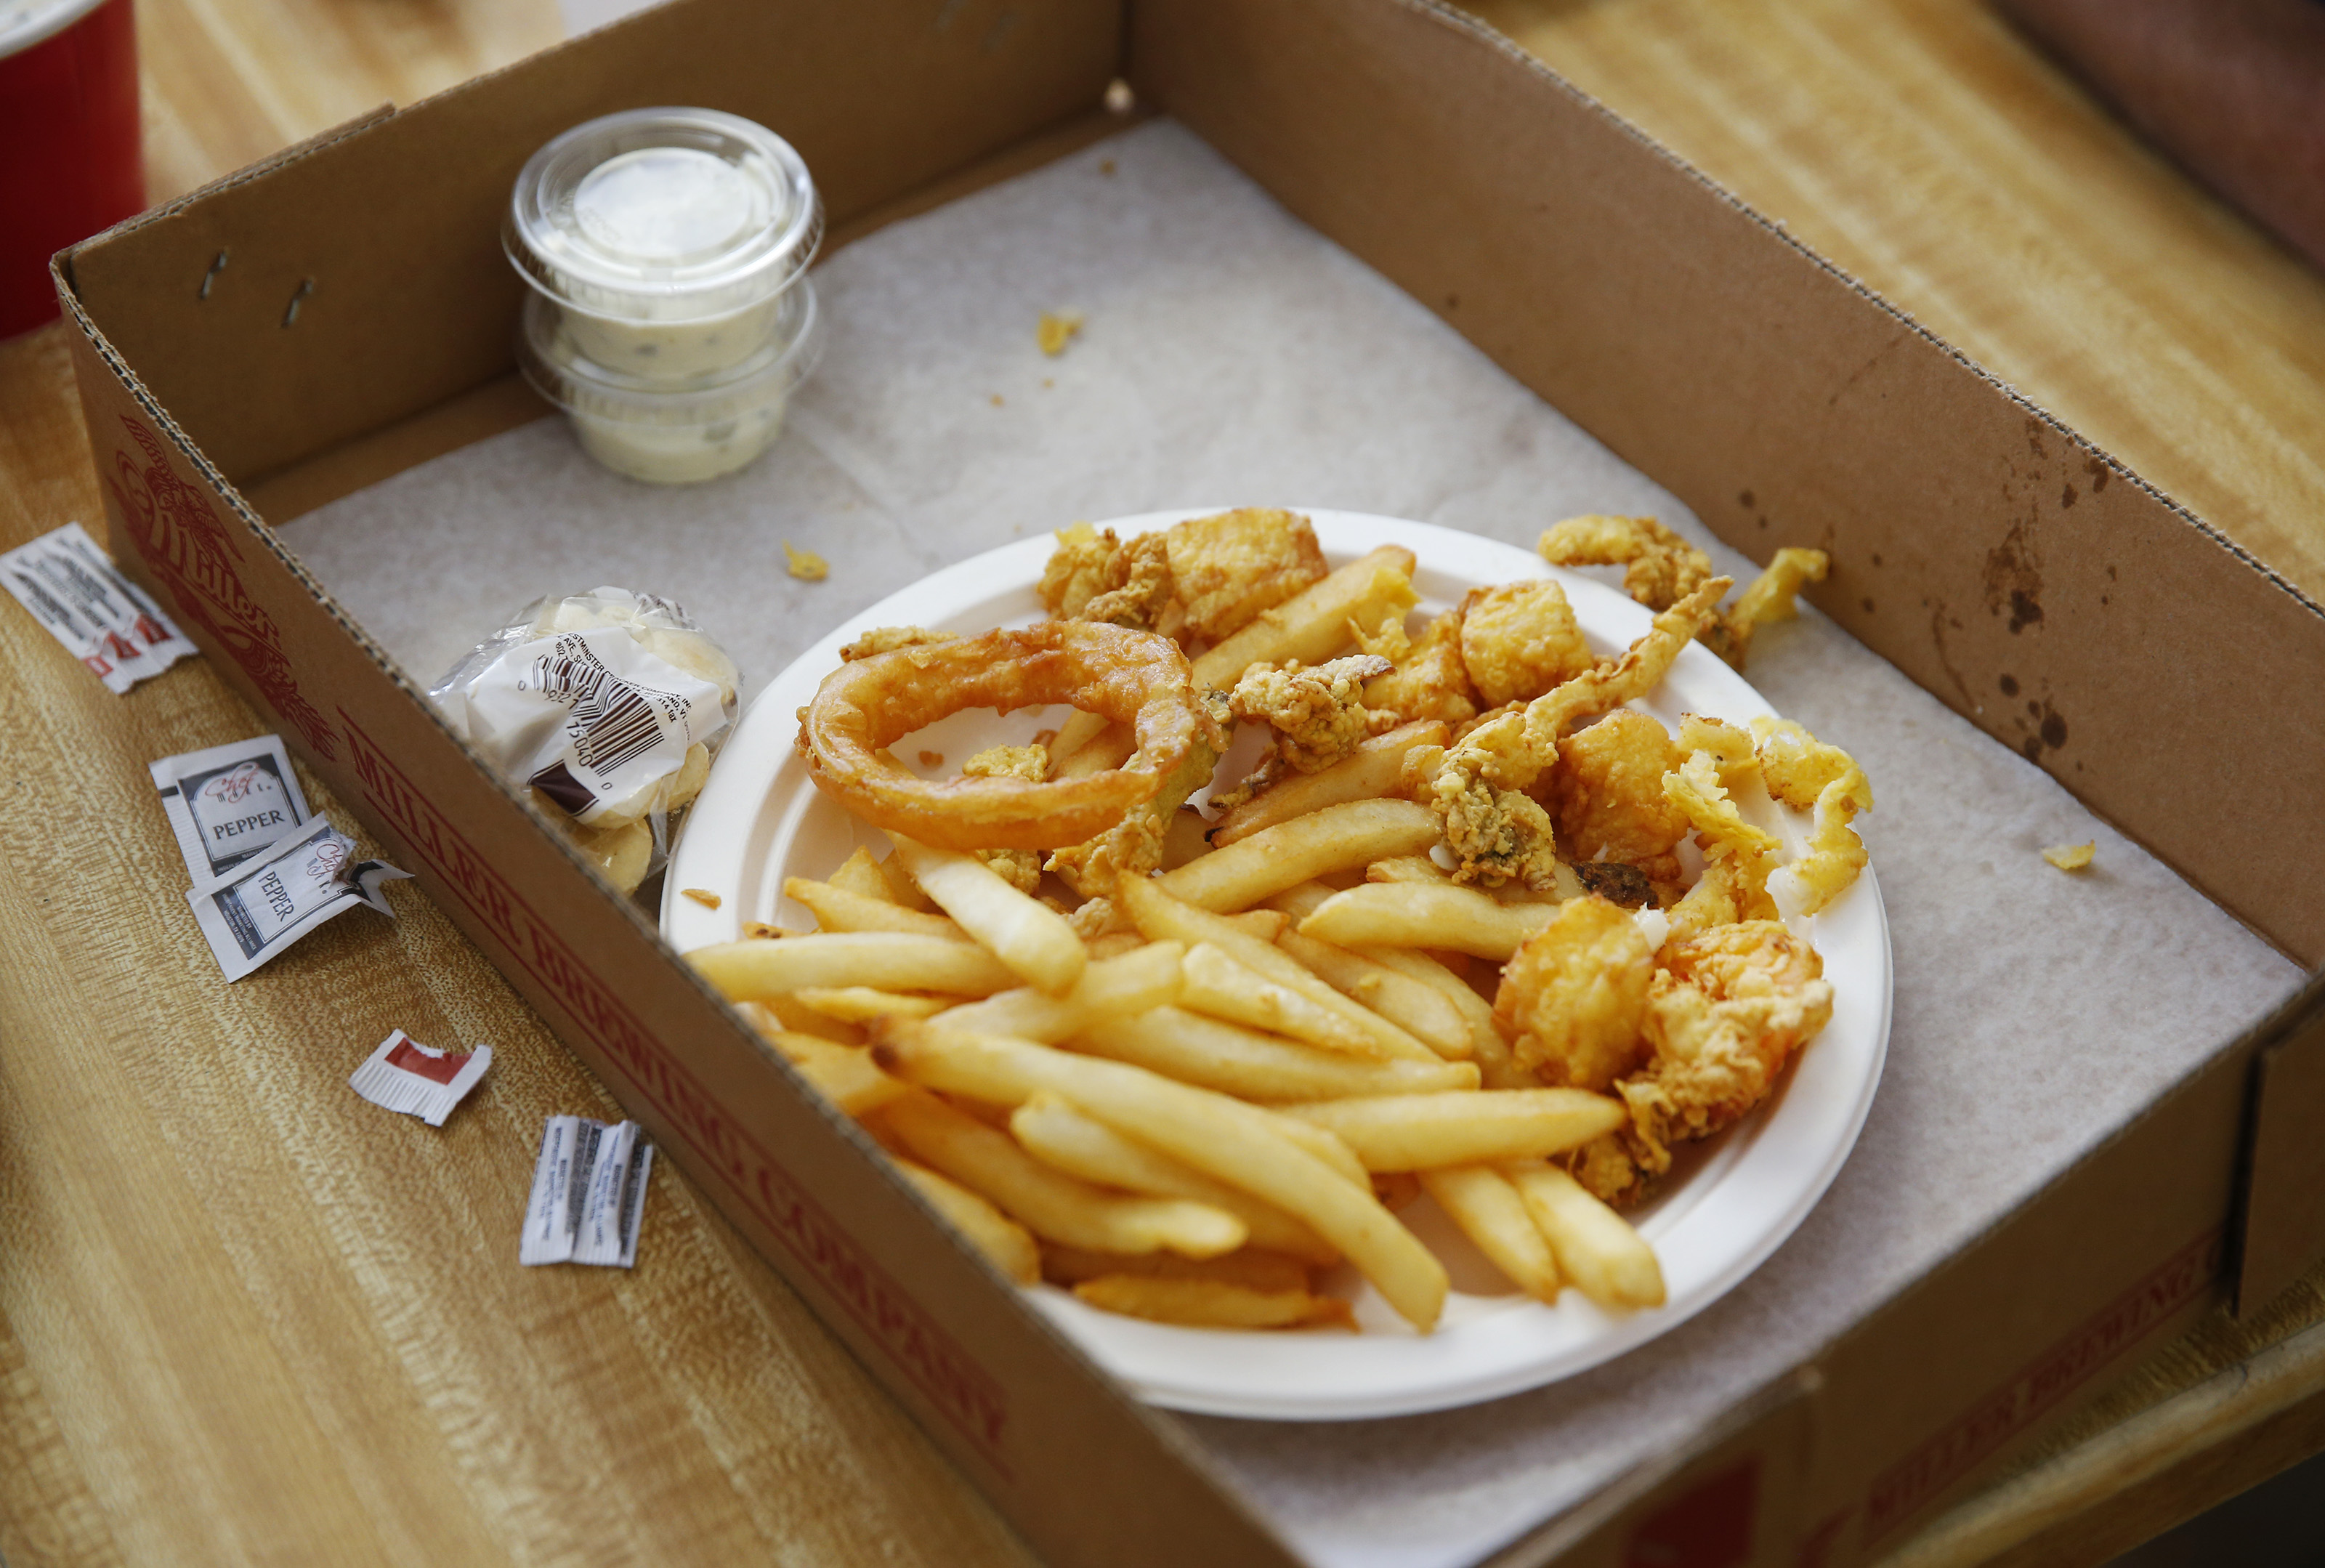 Fried clams and french fries. Photo by Jessica Rinaldi/The Boston Globe via Getty Images.